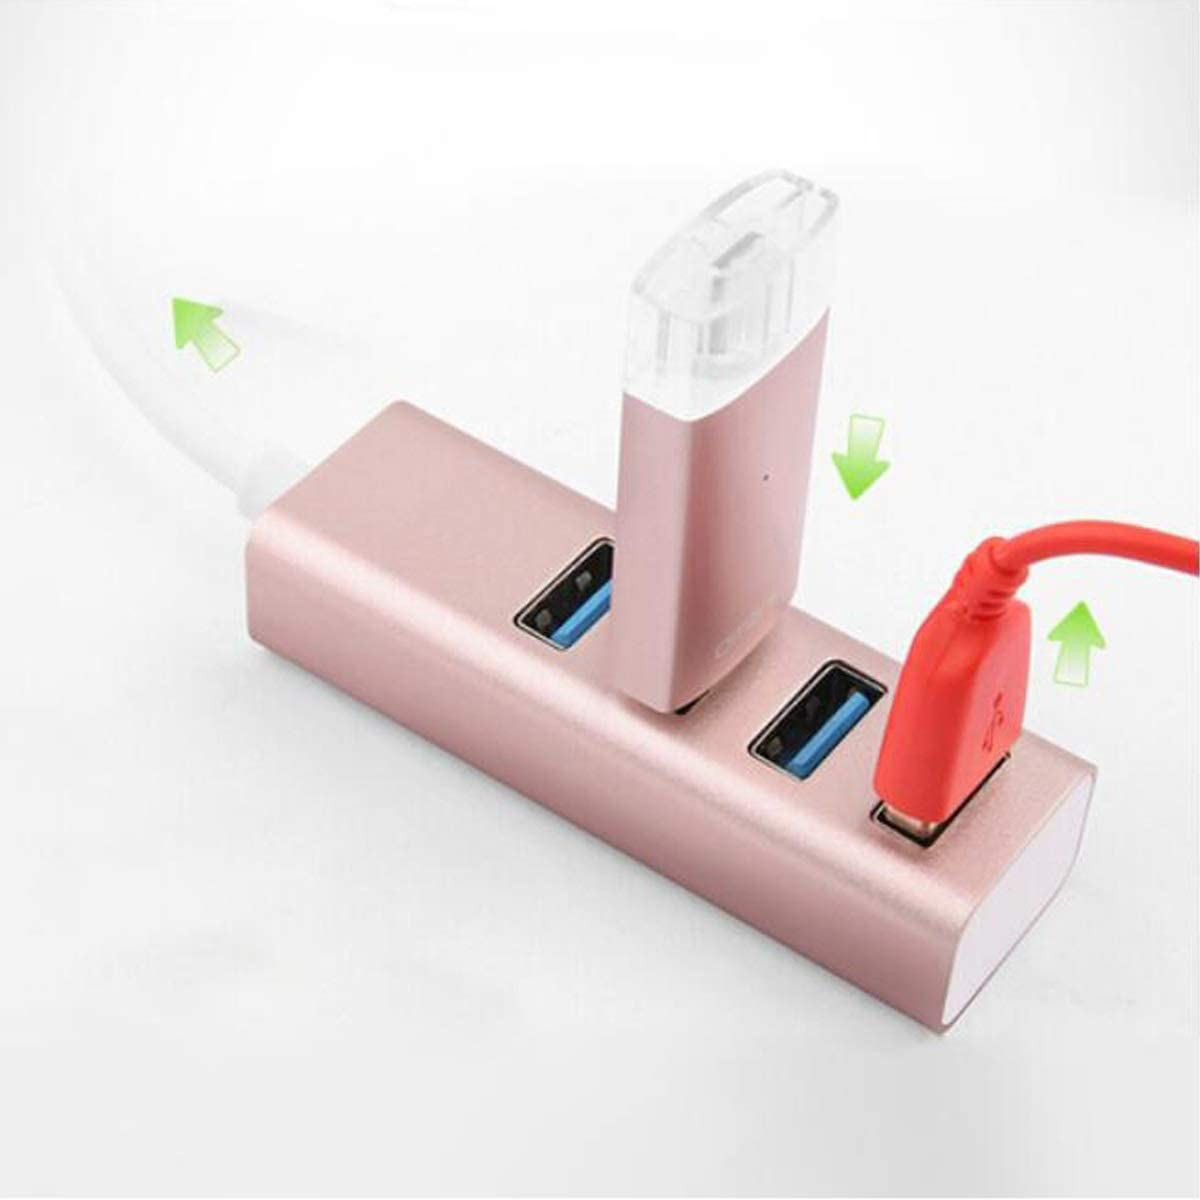 Jinfengtongxun Hub HUB Converter Color : Pink, Size : 0.5 m USB3.0 Splitter 0.5 M Unique High Speed Extension One for Four Interface Hub